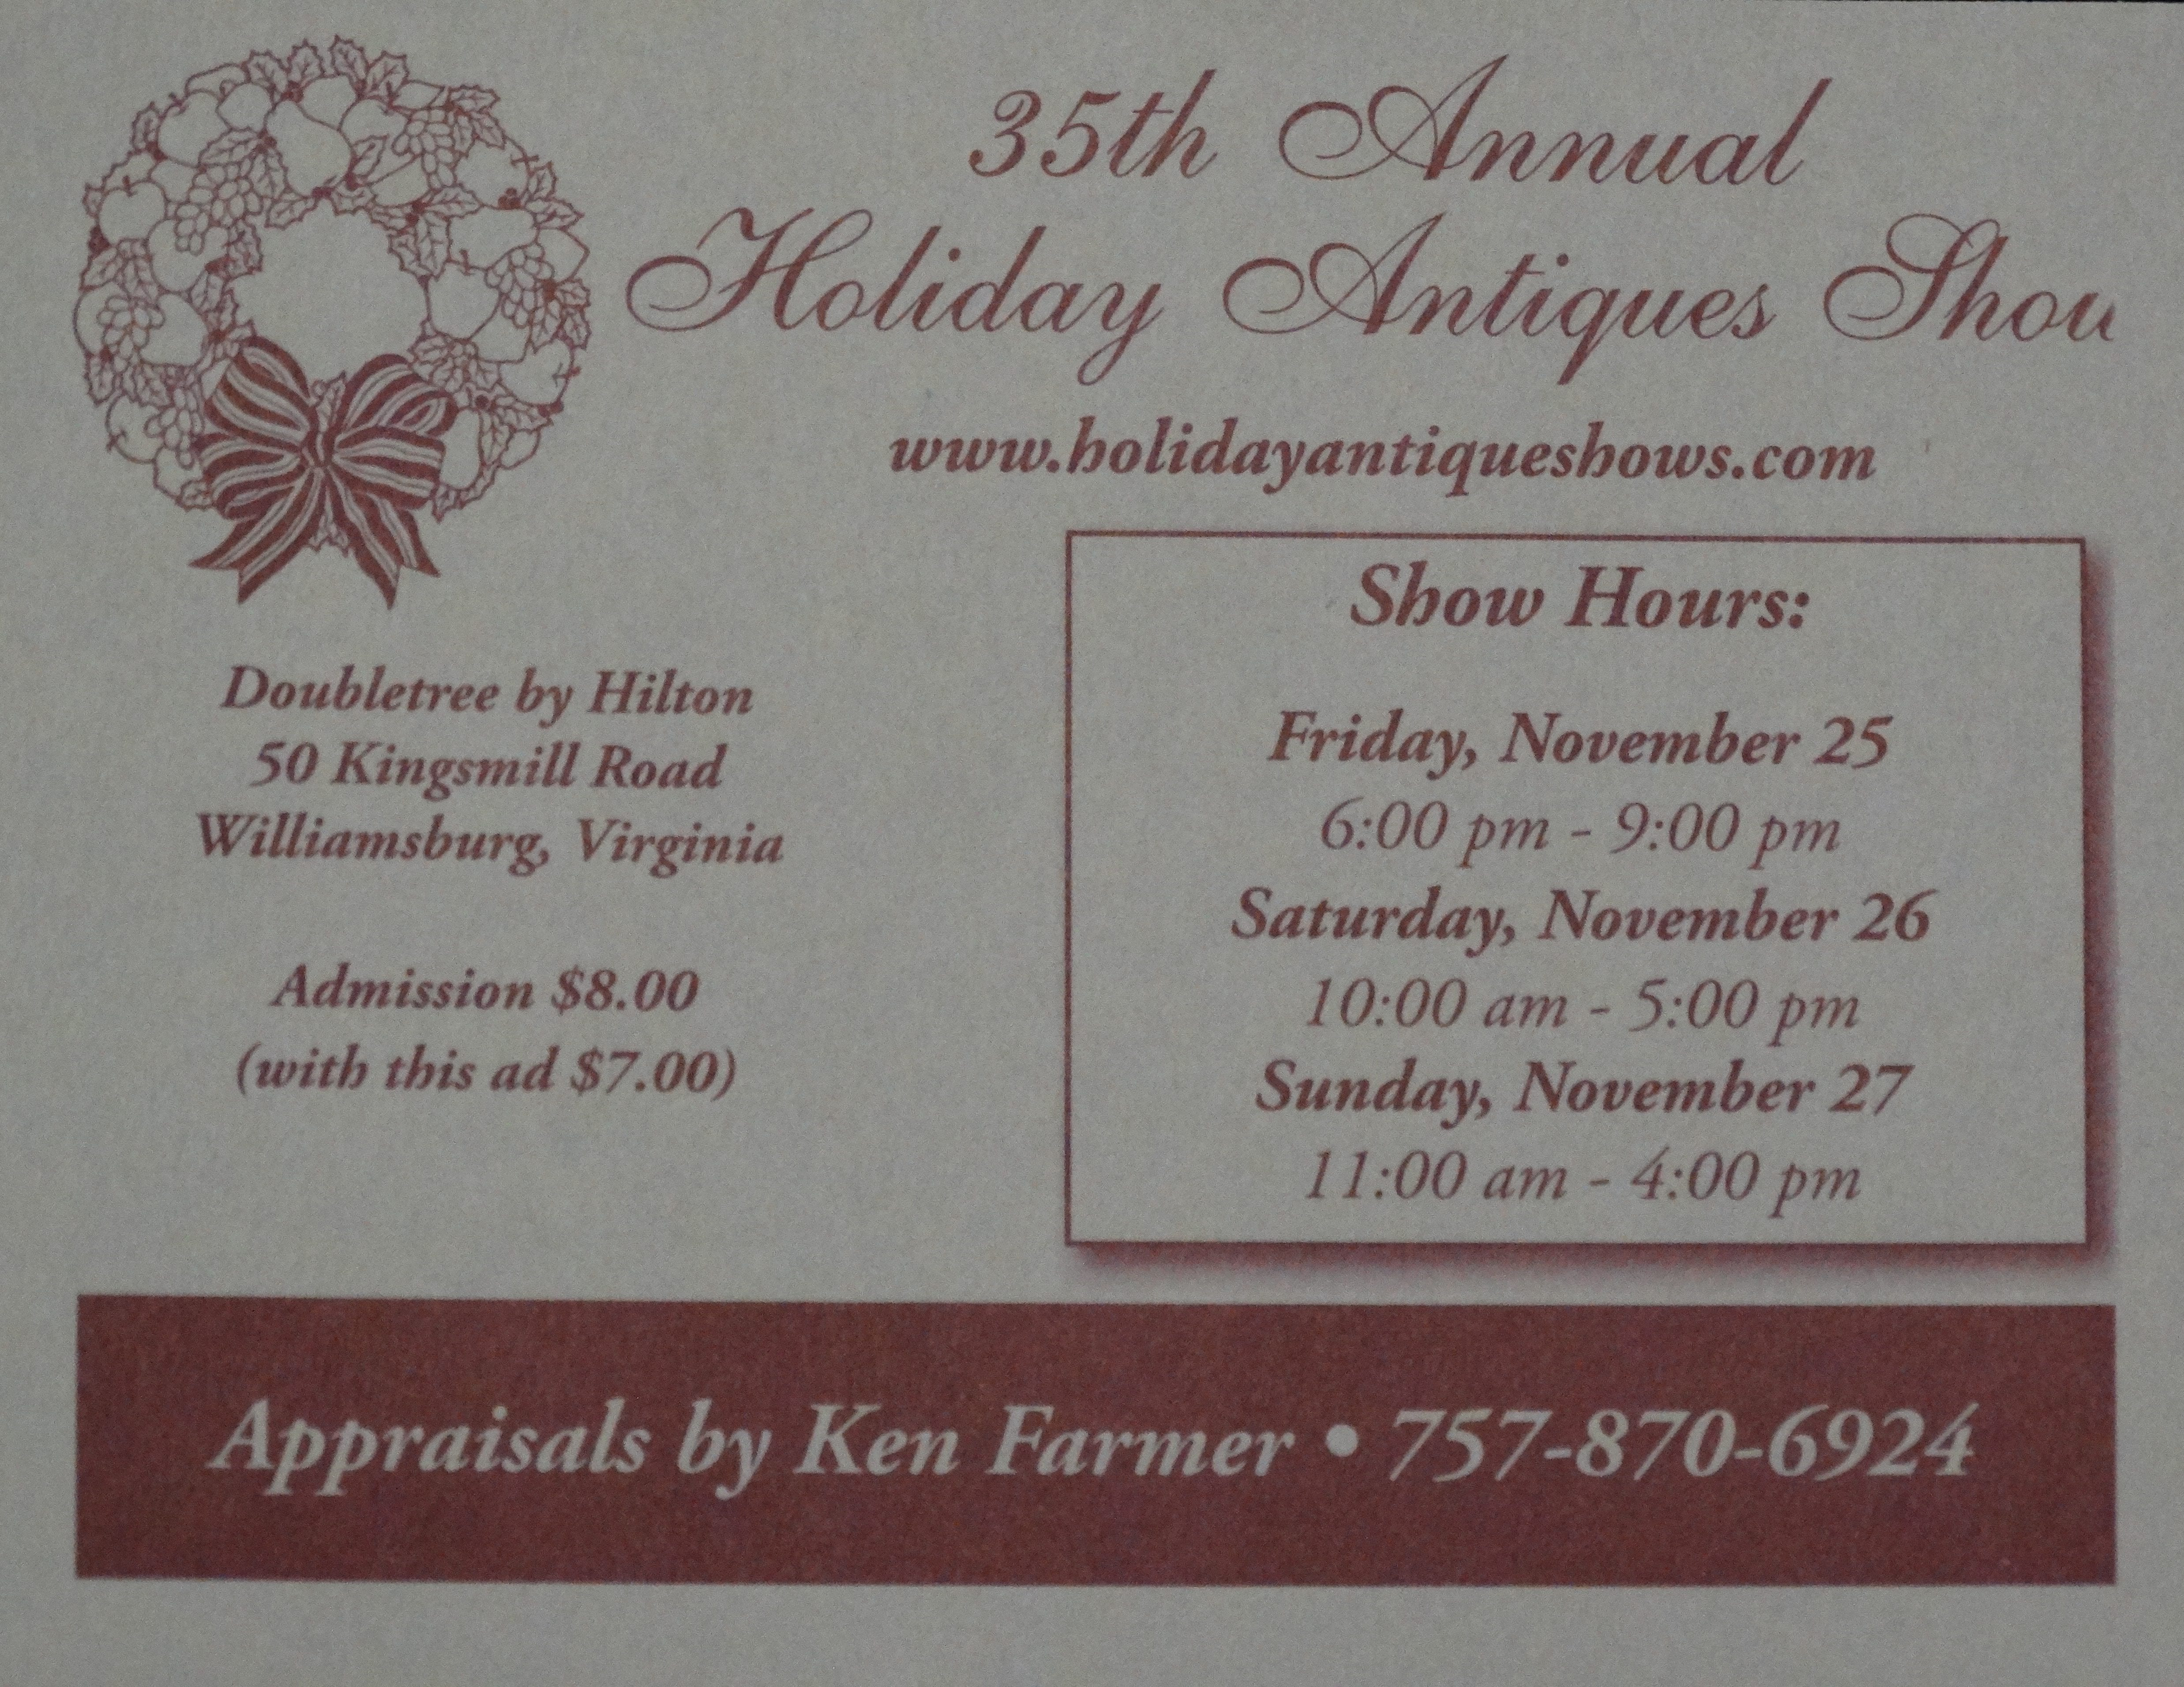 Holiday Antiques Show